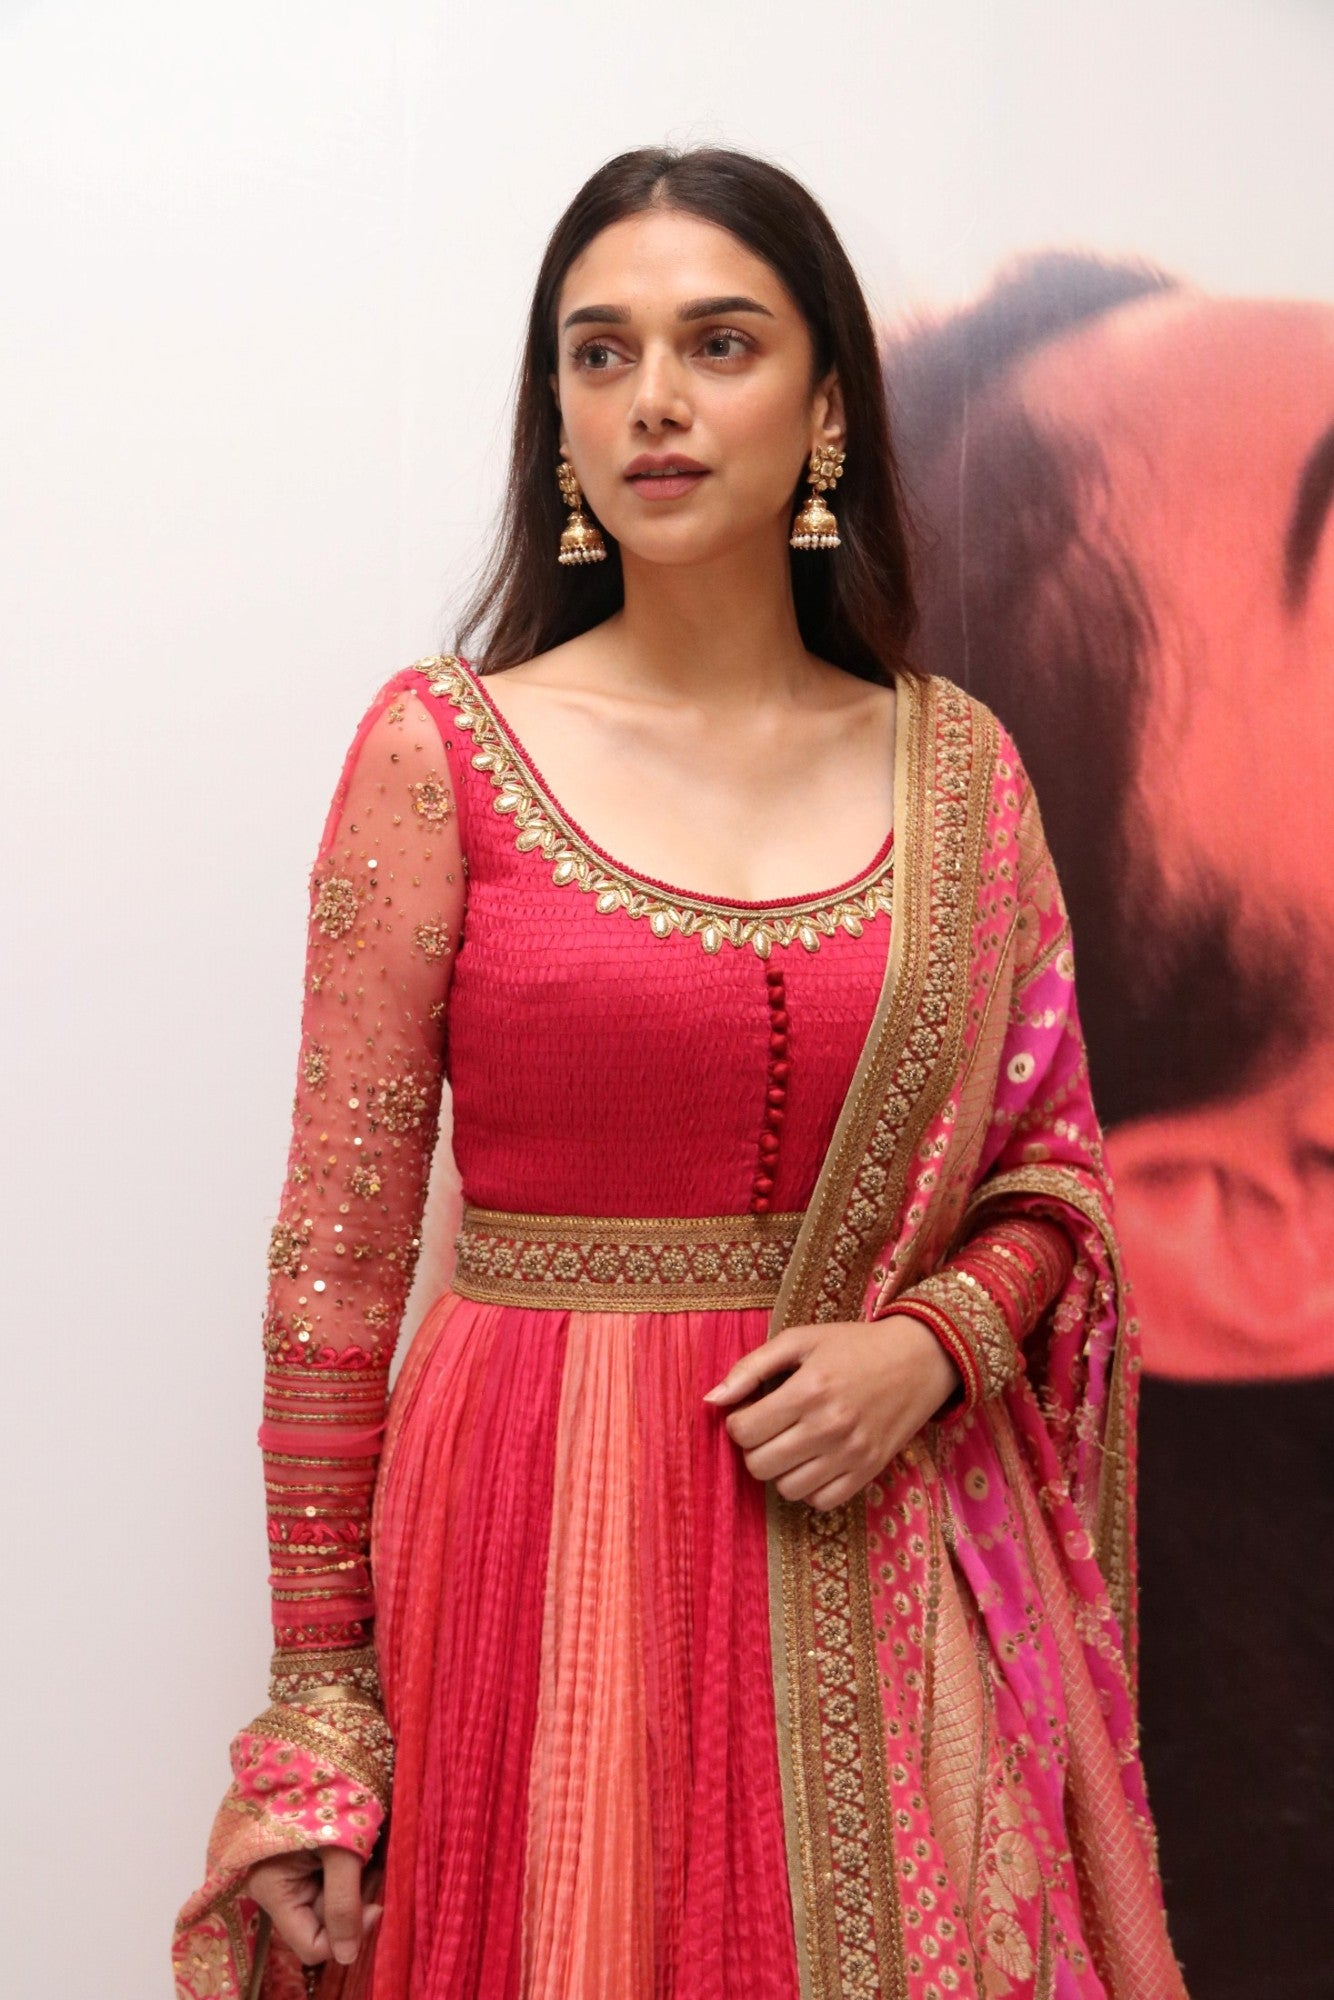 Aditi Rao Hydari in red & pink color Floor Length Crushed Anarkali Suit Indian Ethnic Wear at her upcoming movie Kaatru Veliyidai audio Launch event